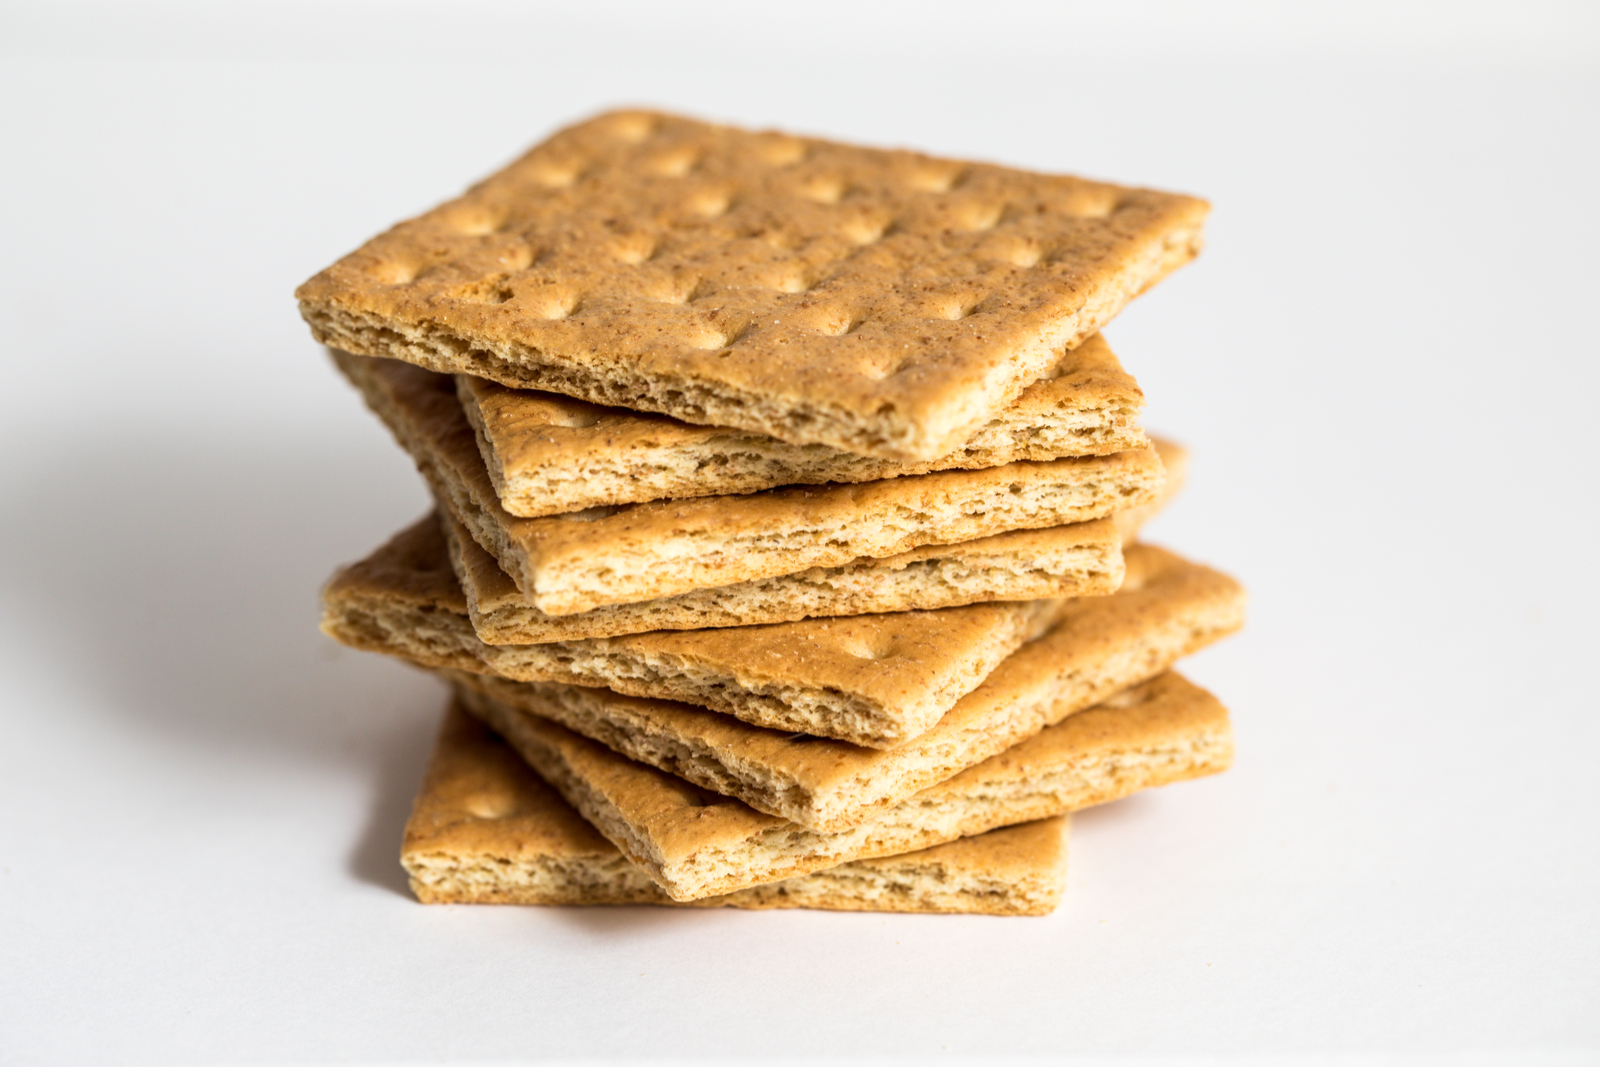 Nabisco Original Grahams | 15 Popular Snack Foods That Are Actually Vegan Approved